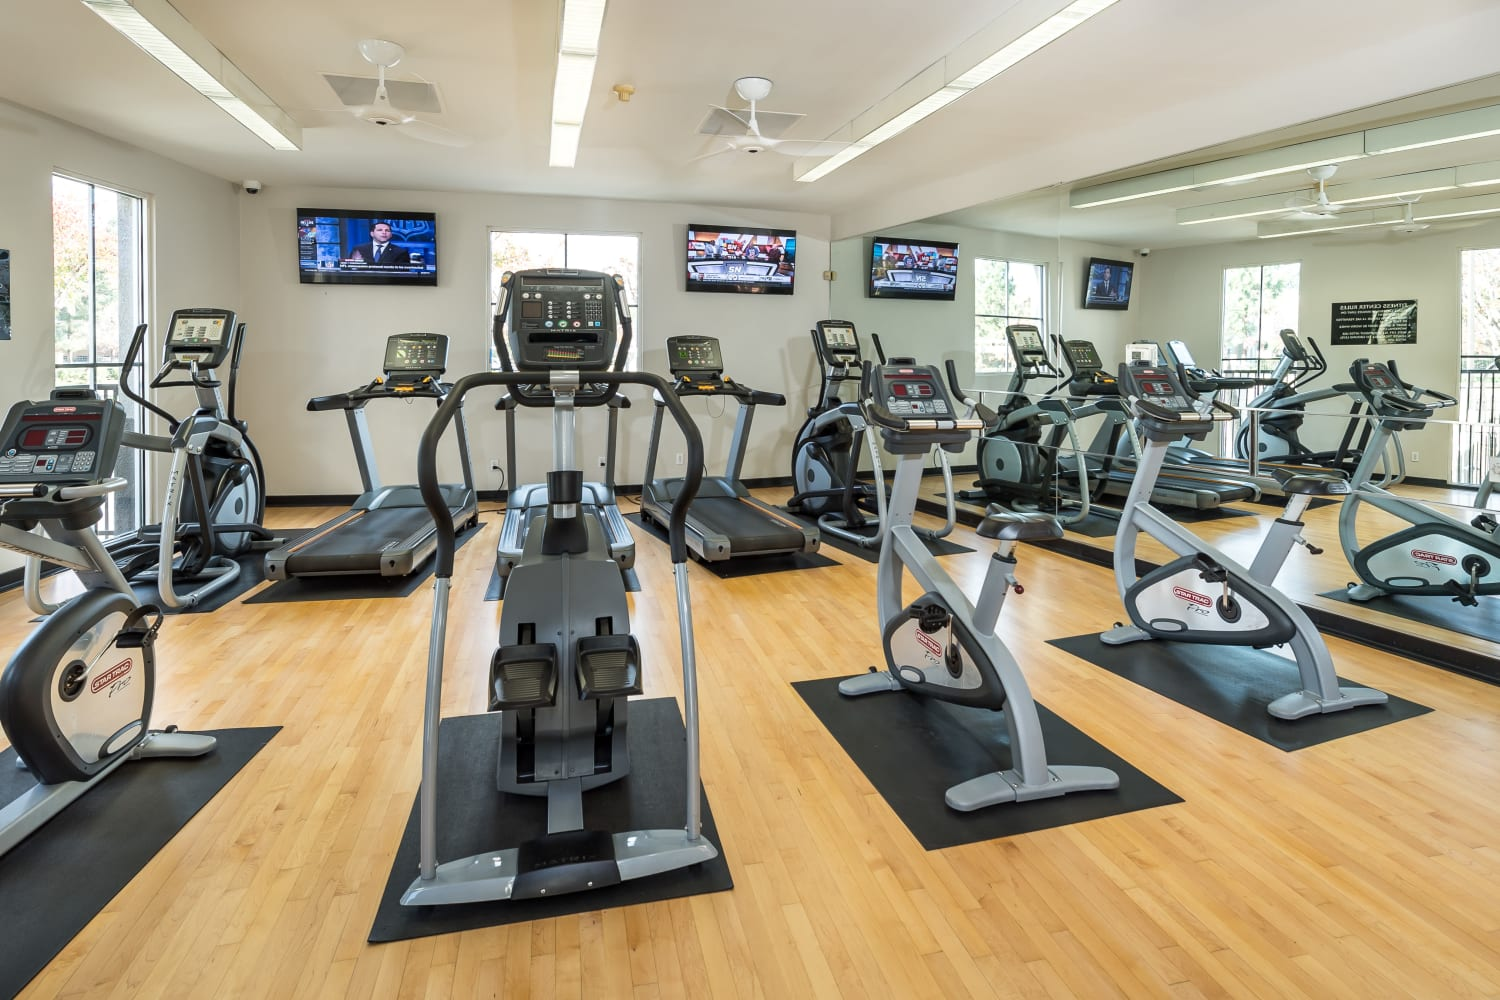 Our apartments at Bella Vista Apartments in Santa Clara, California offer a 24-hour fitness center